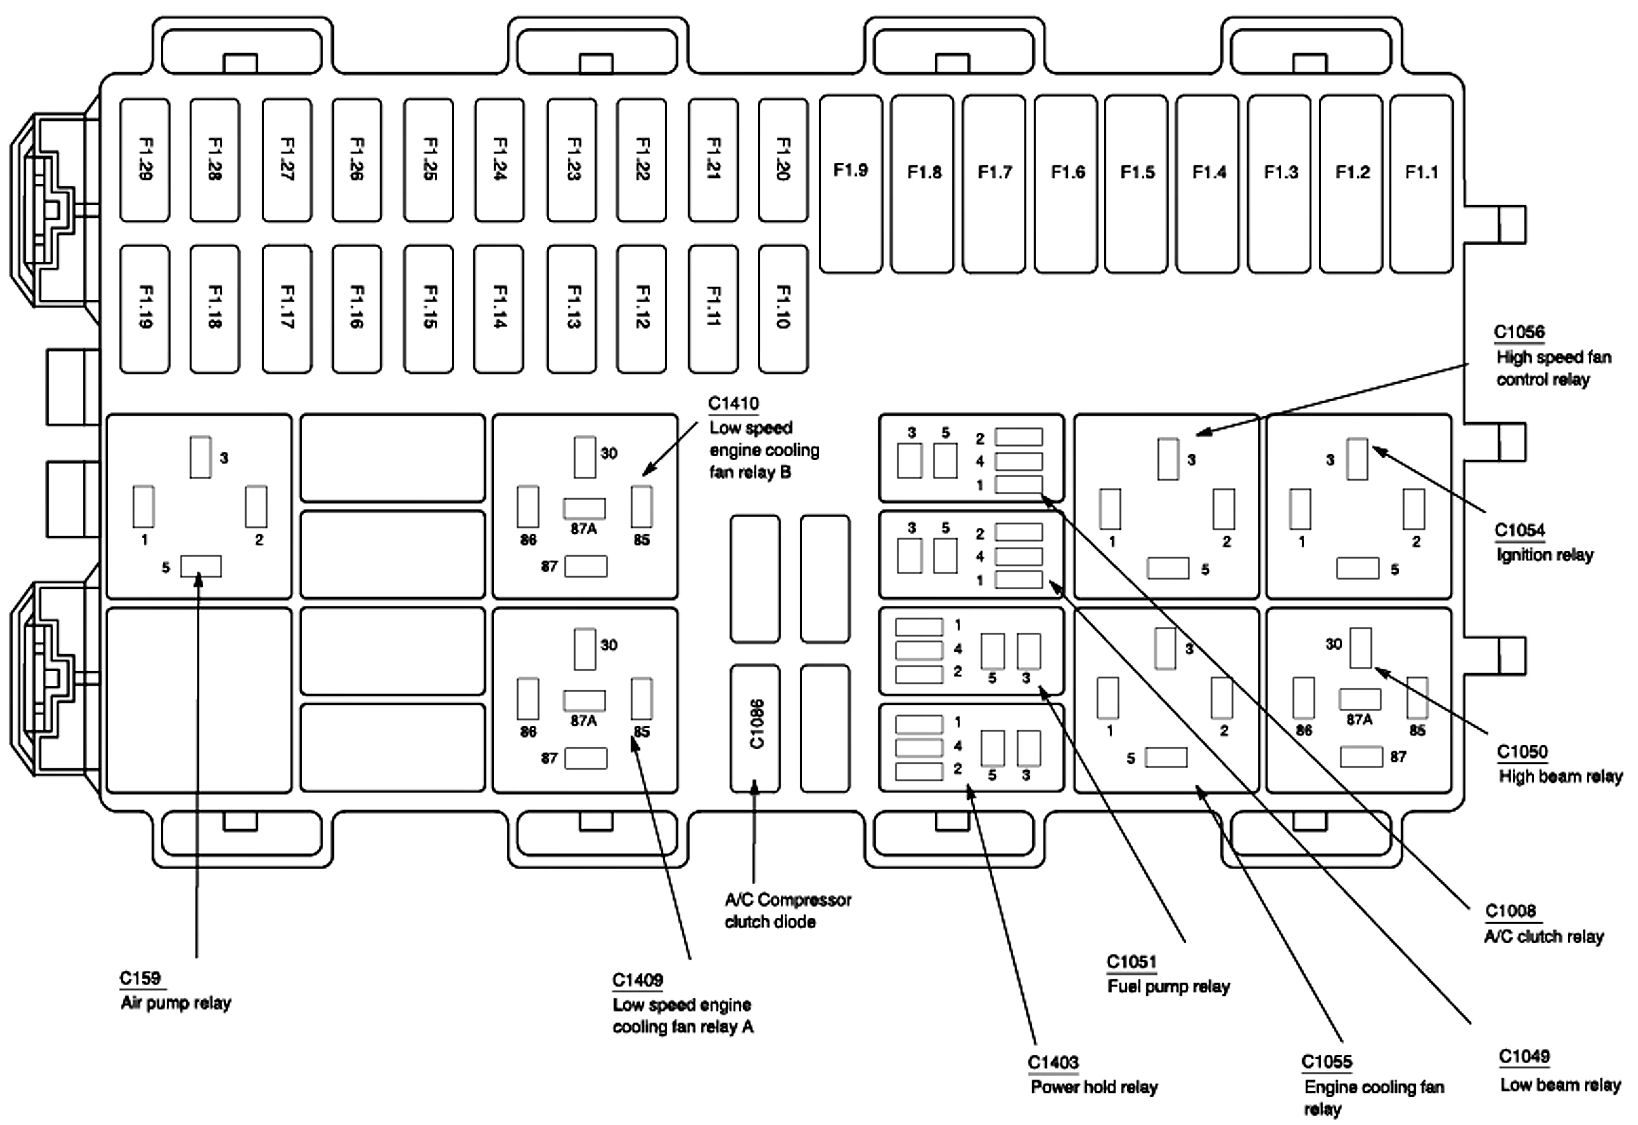 Is There Any Place I Can Get A Fuse Box Layout Diagram So That I Know Which Fuse Is For What In 2020 Ford Focus Fuse Box Ford Focus St